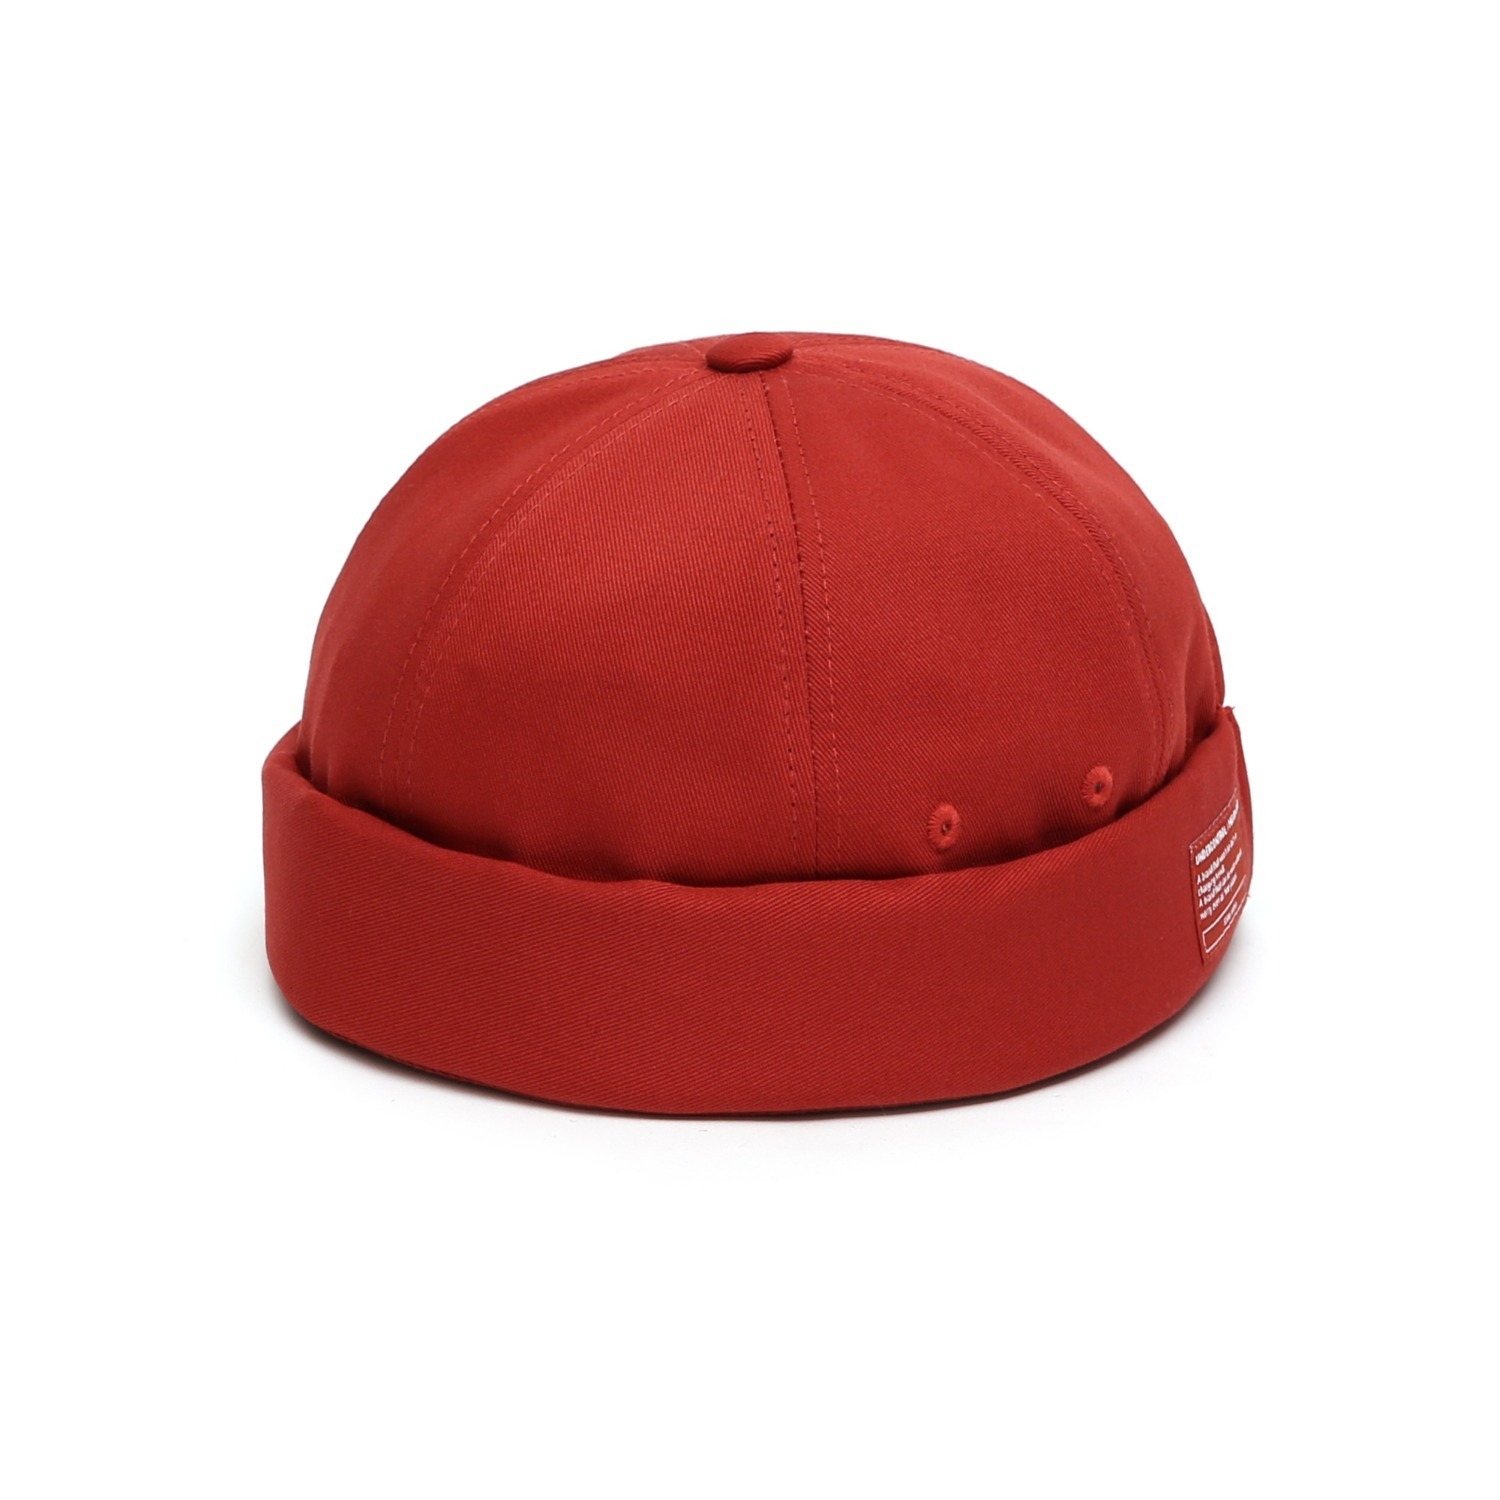 MOLD CAP / TWILL COTTON / OG RED